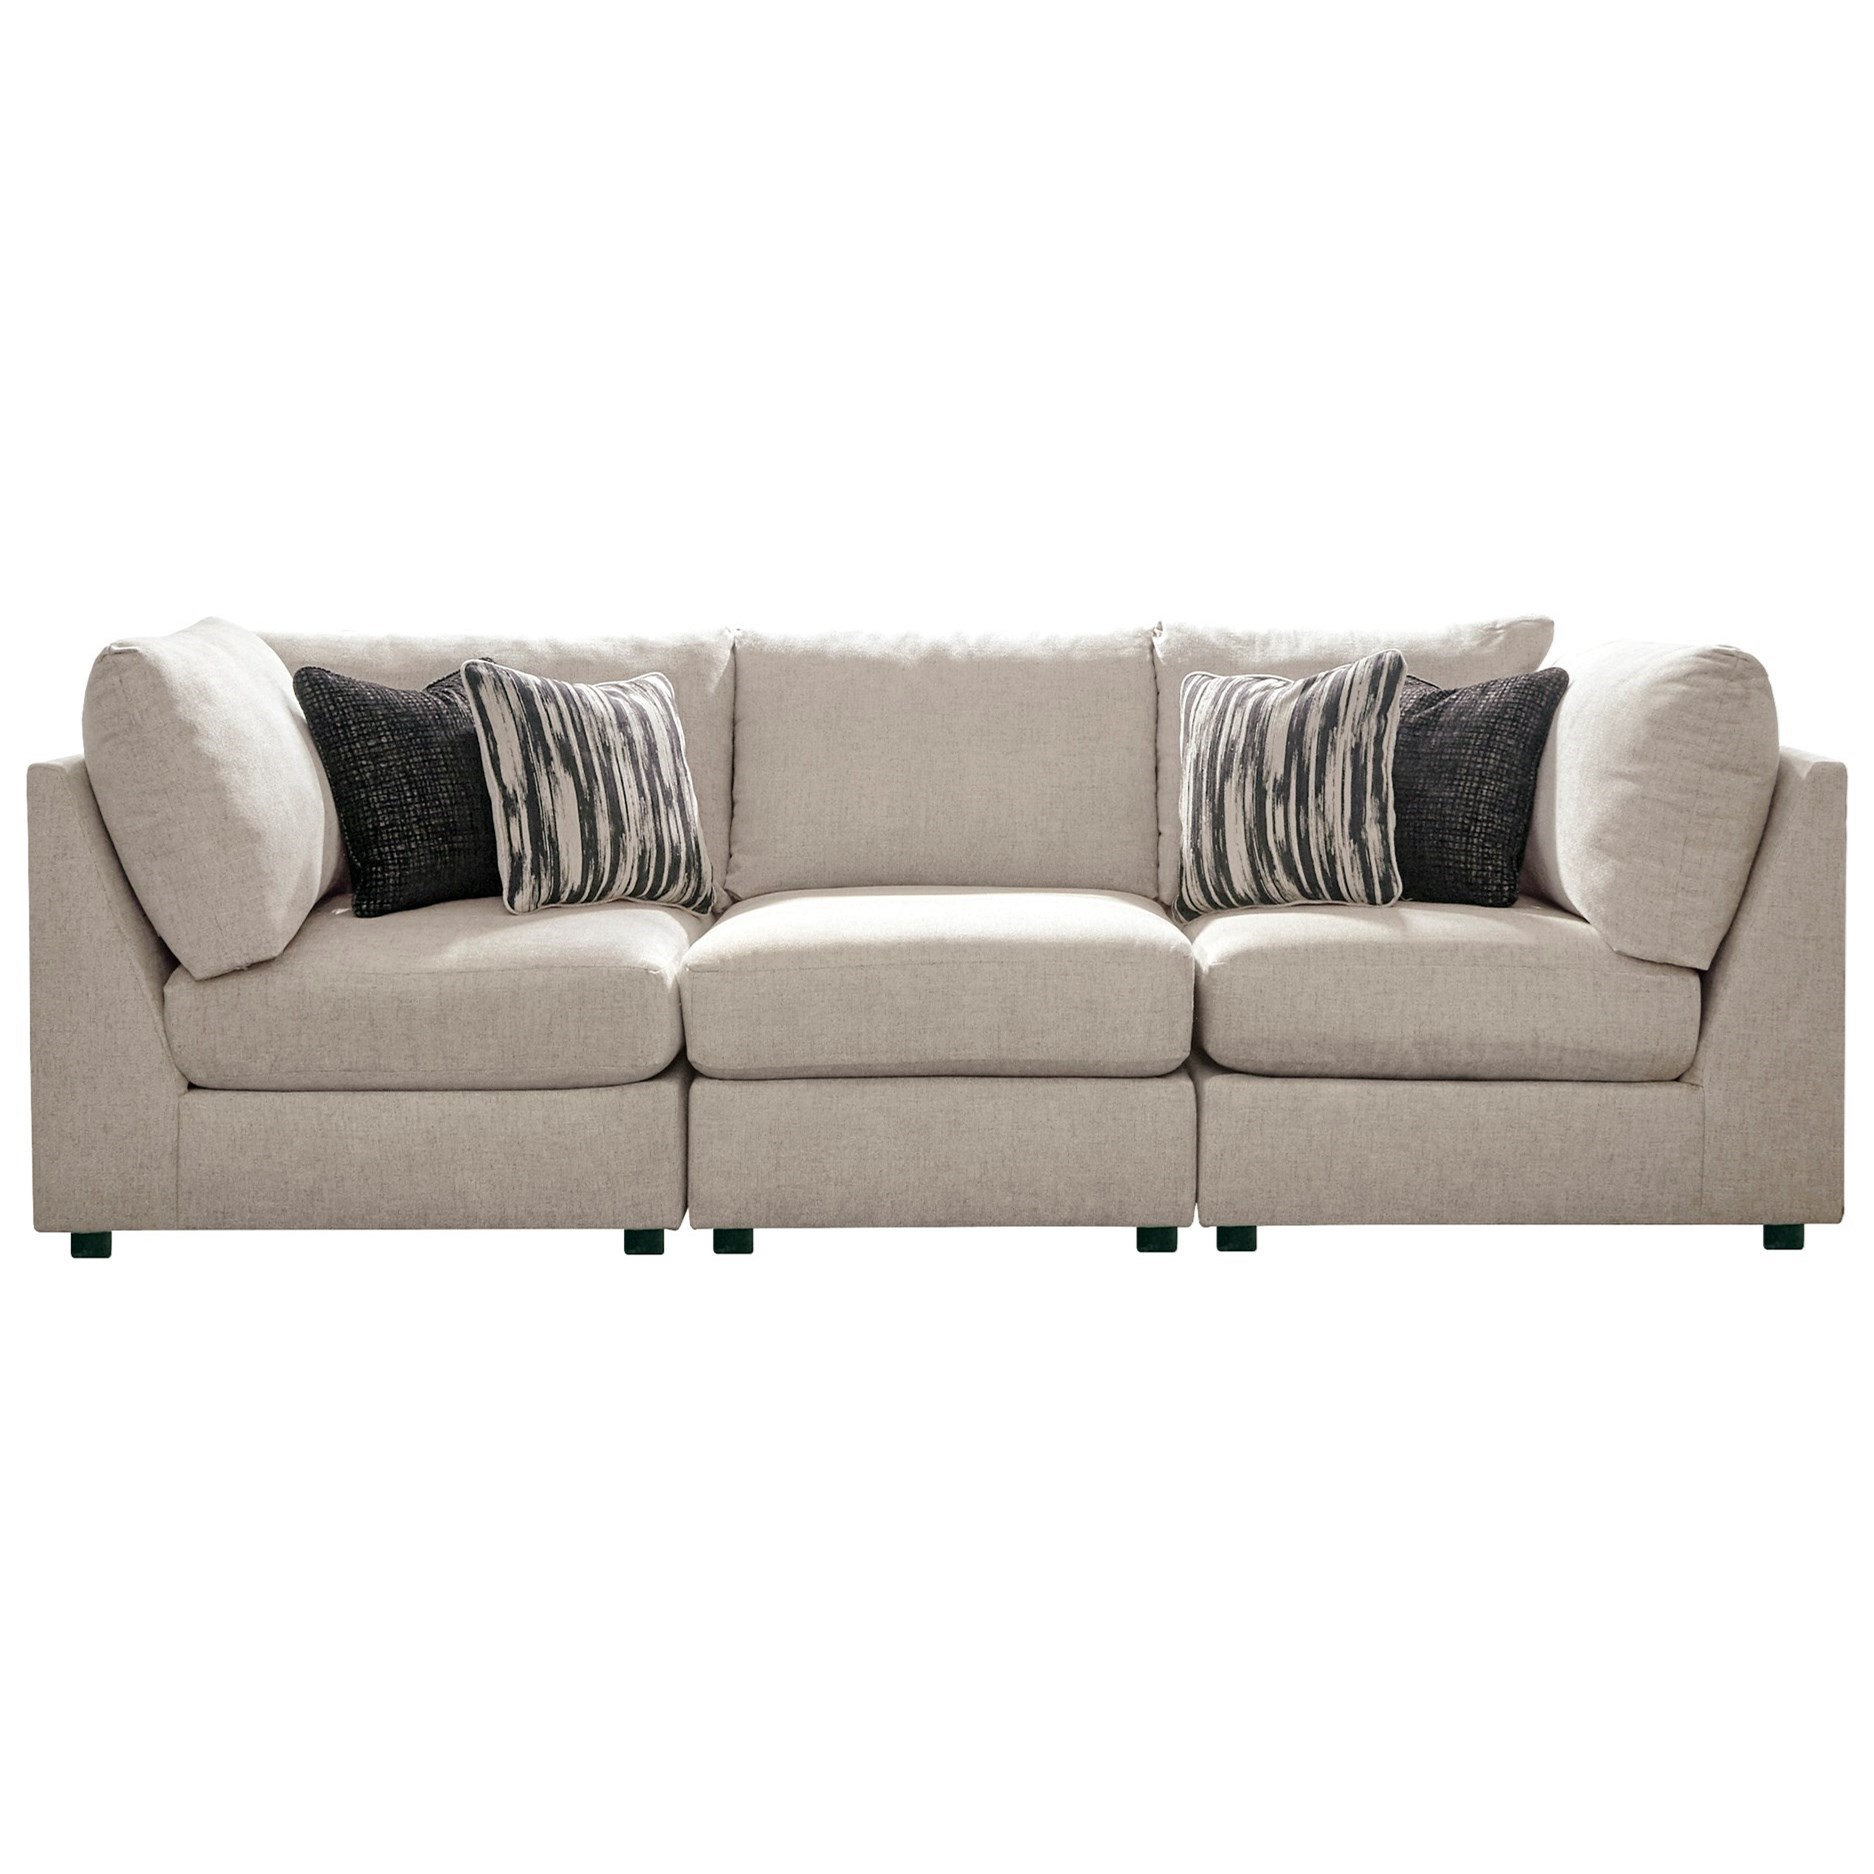 Kellway Sofa by Signature Design by Ashley at Smart Buy Furniture